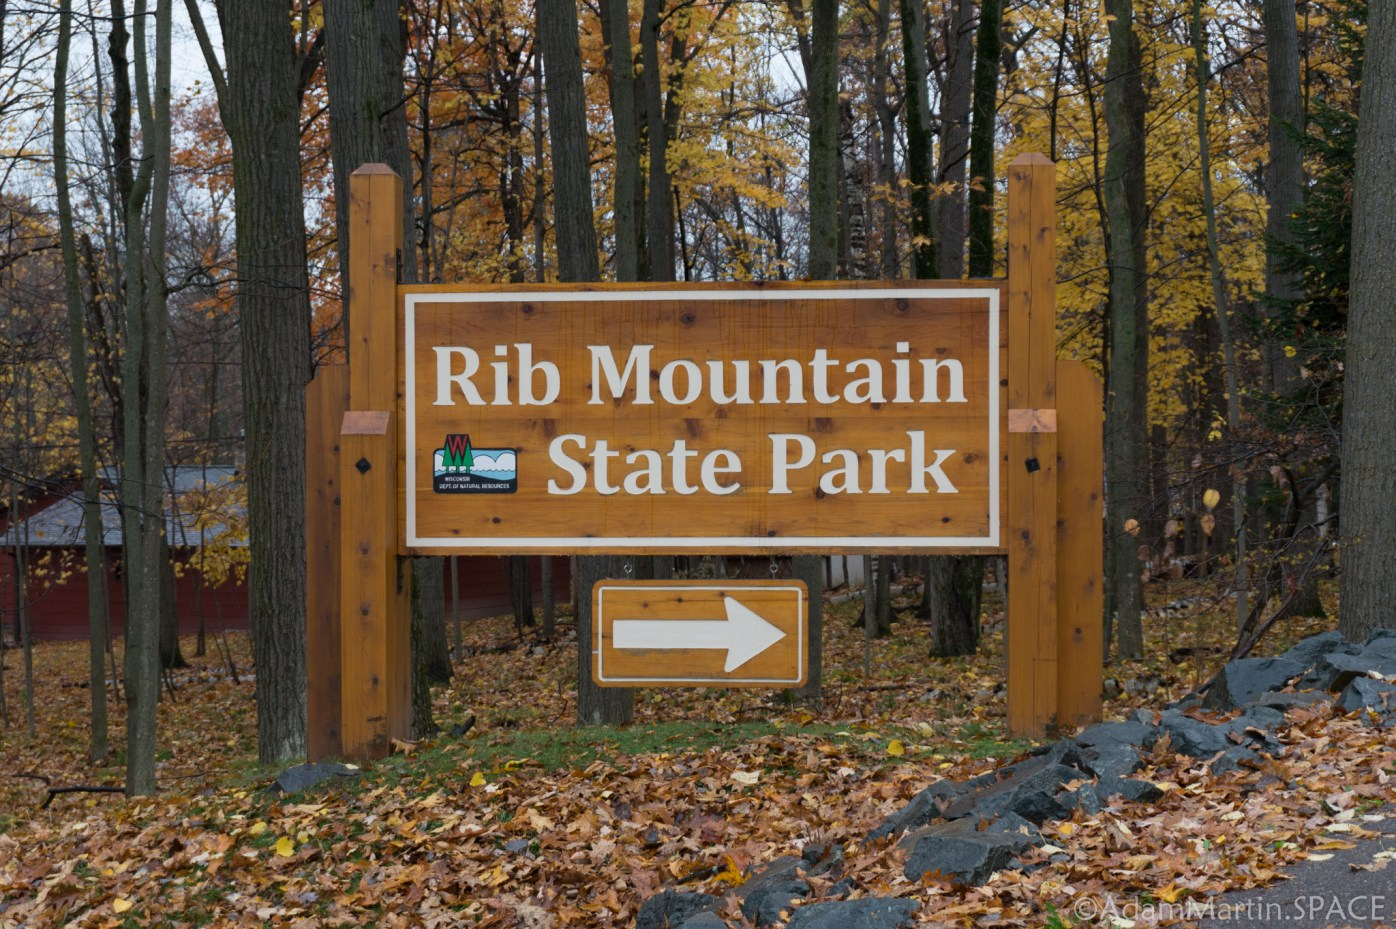 Rib Mountain State Park - Entrance sign at bottom of mountain